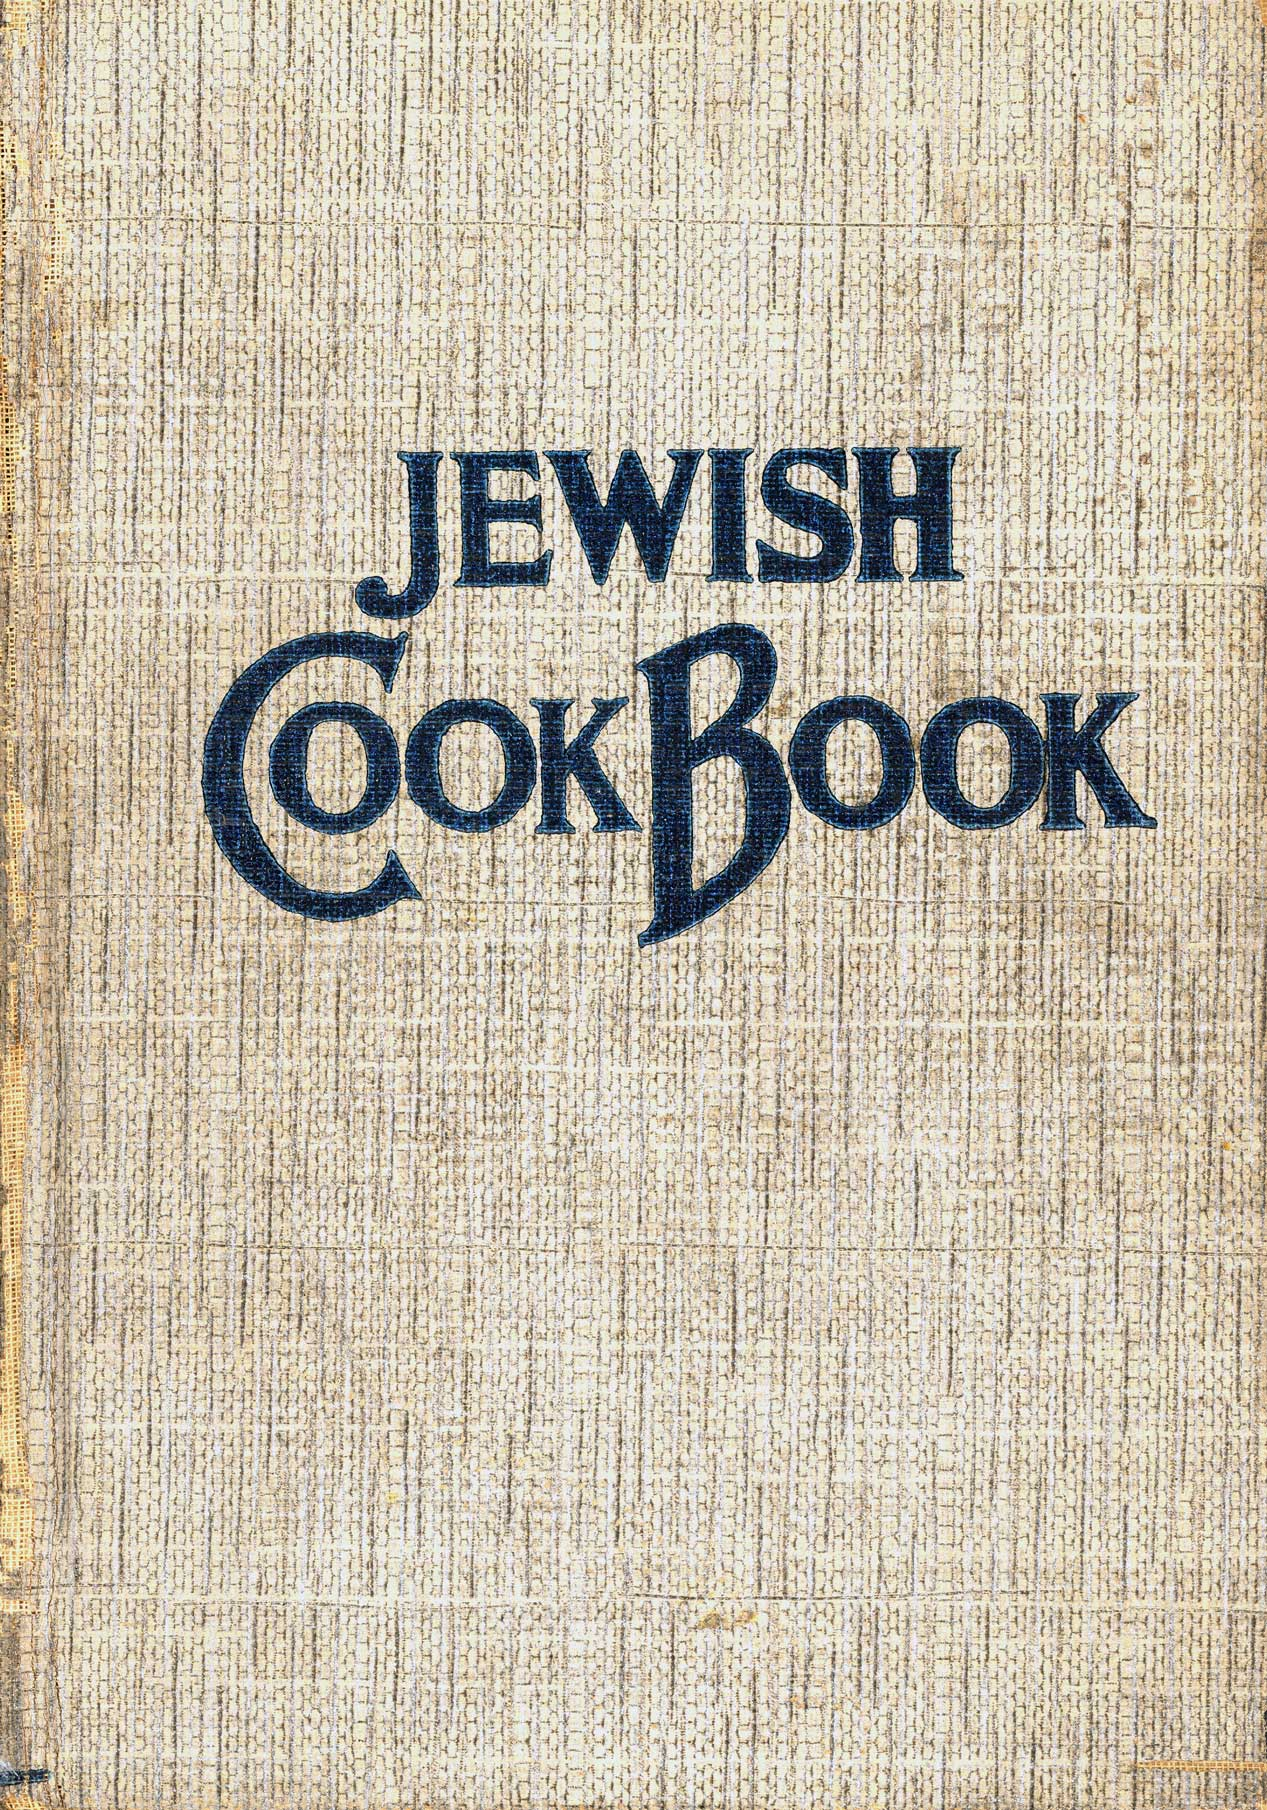 The international Jewish cook book : 1600 recipes according to the Jewish dietary laws with the rules for kashering : the favorite recipes of America, Austria, Germany, Russia, France, Poland, Roumania, etc., etc.